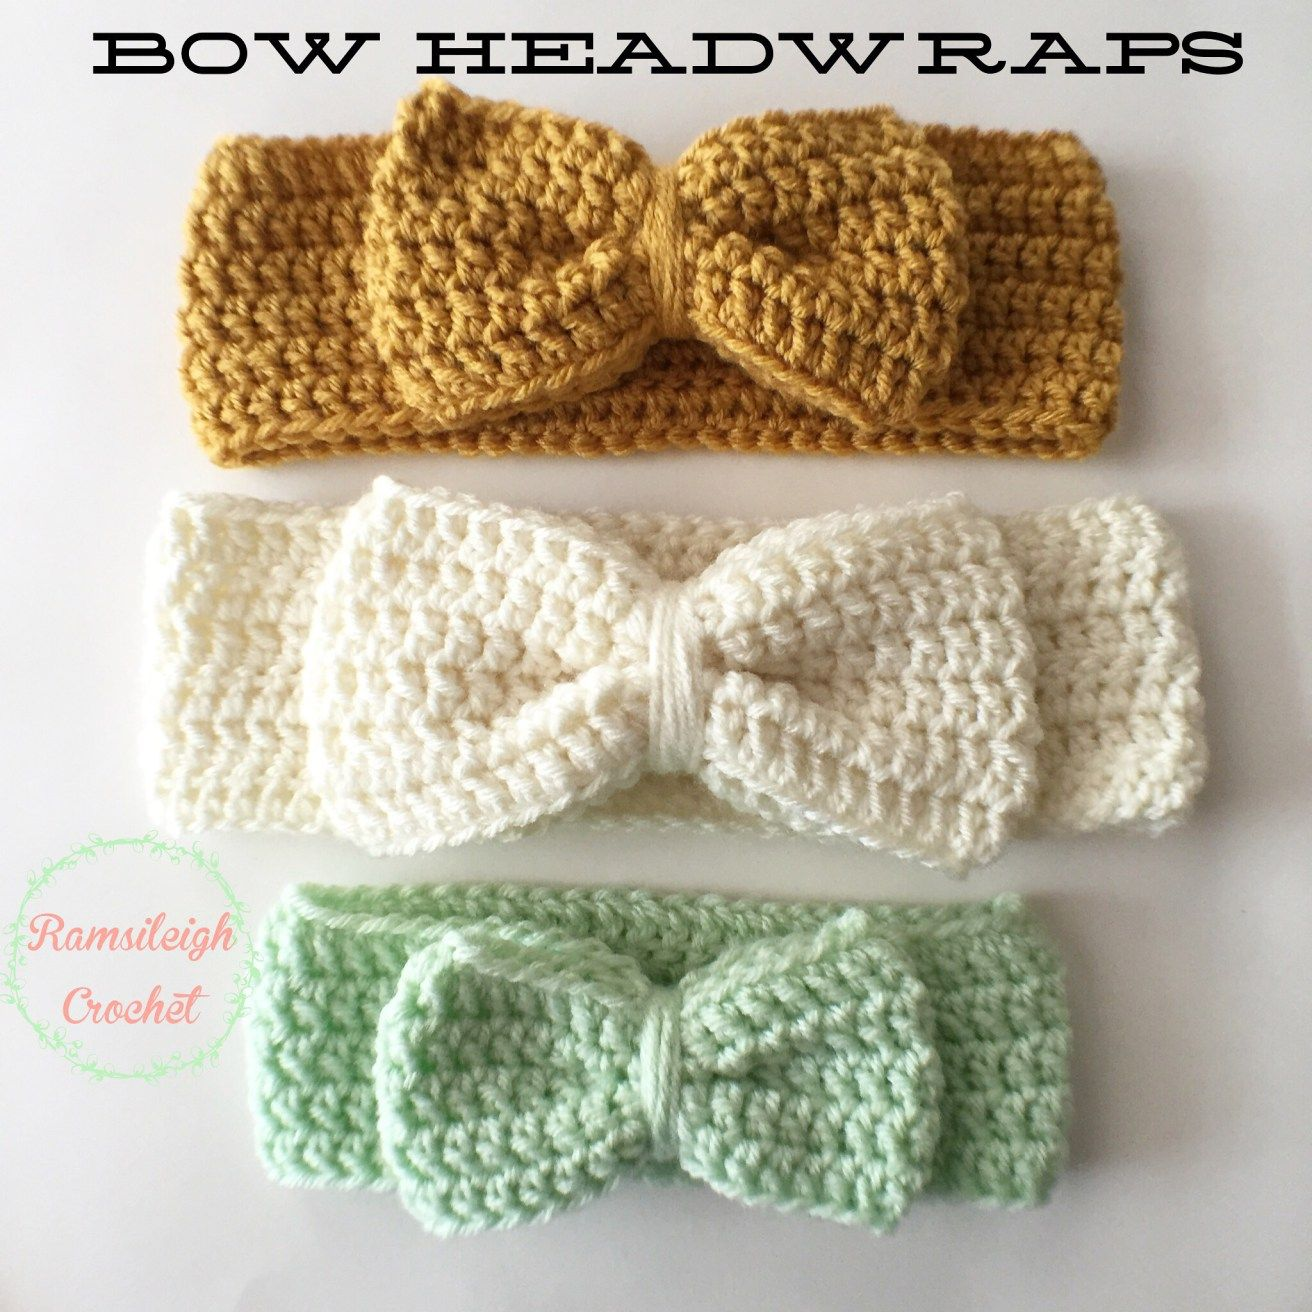 Crochet Bow Headwrap {FREE PATTERN} | Crochet | Pinterest | Free ...